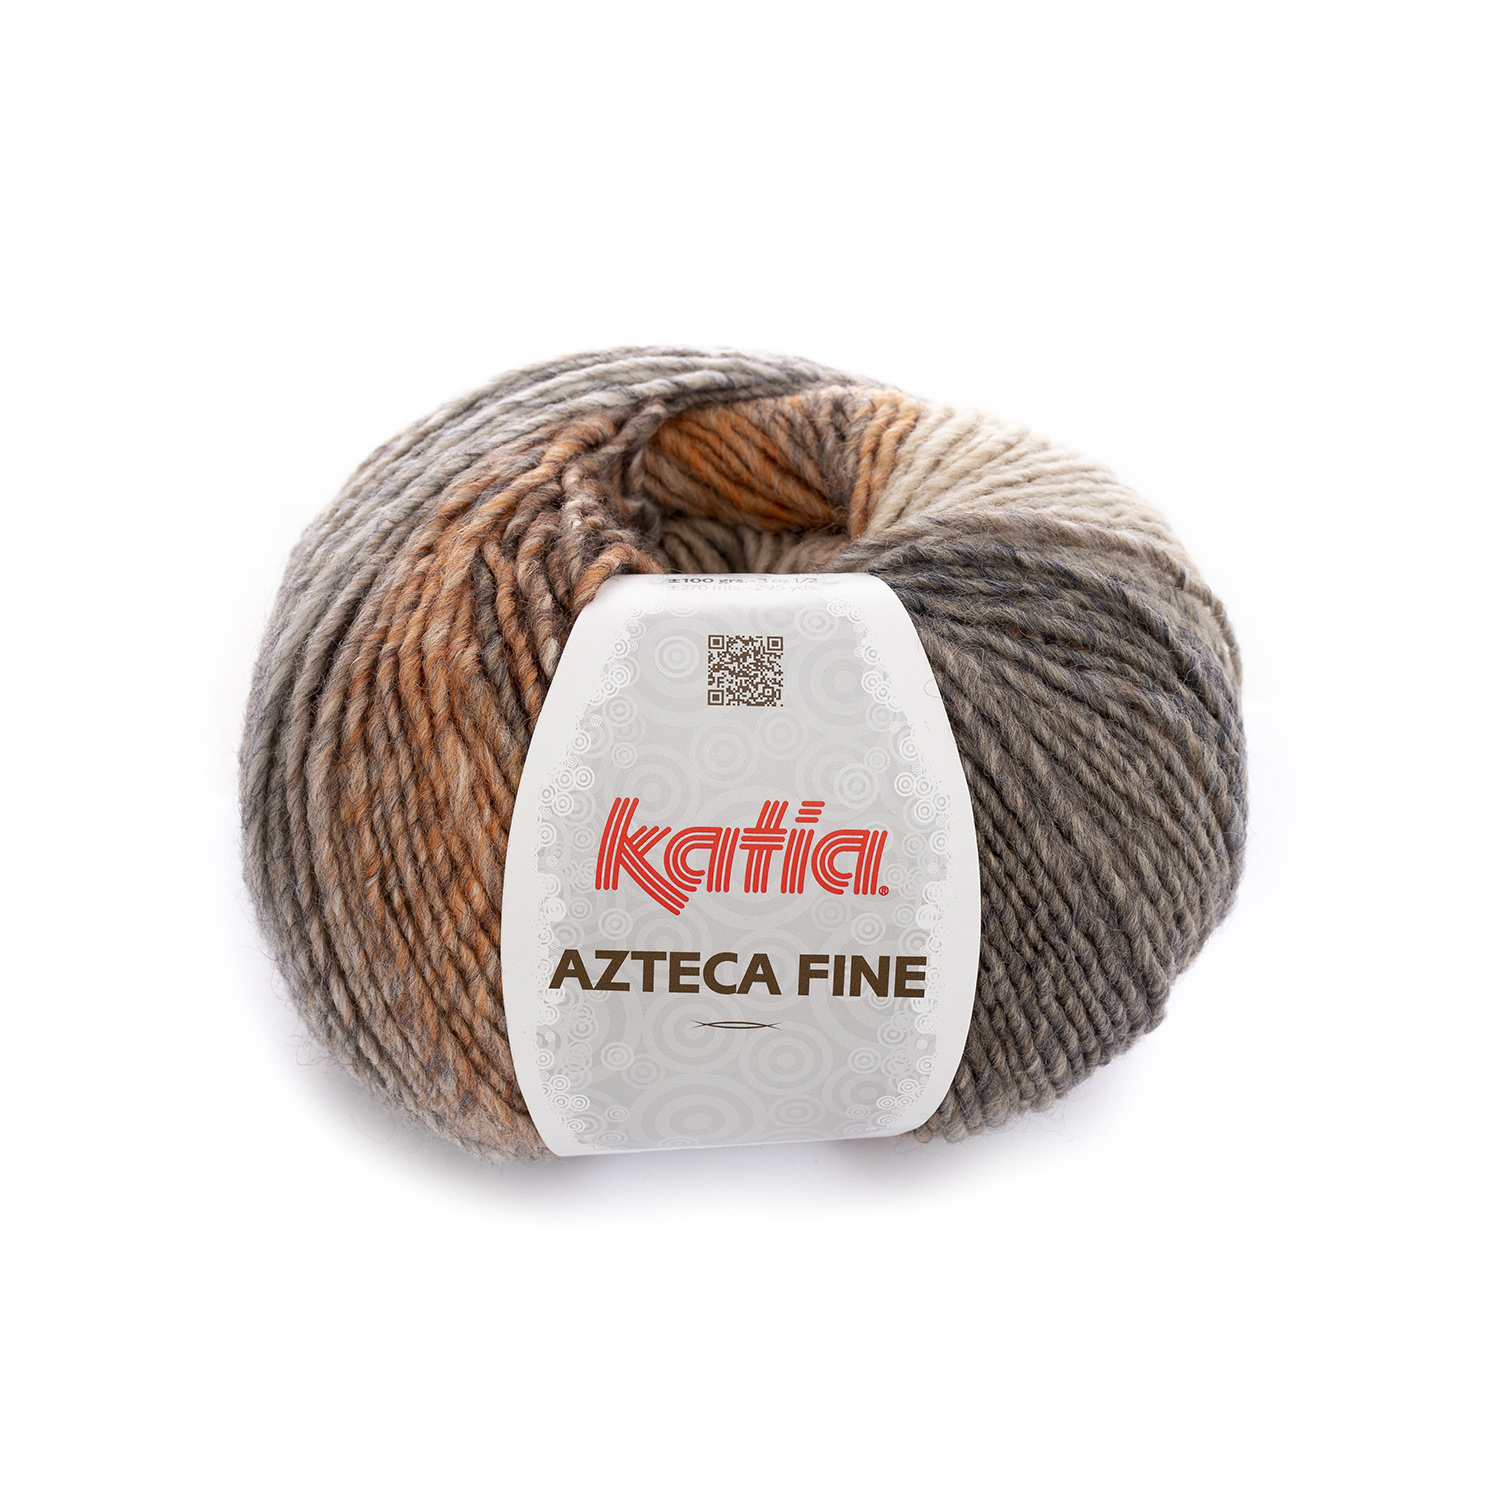 AZTECA FINE - Autumn / Winter - yarns | Katia.com